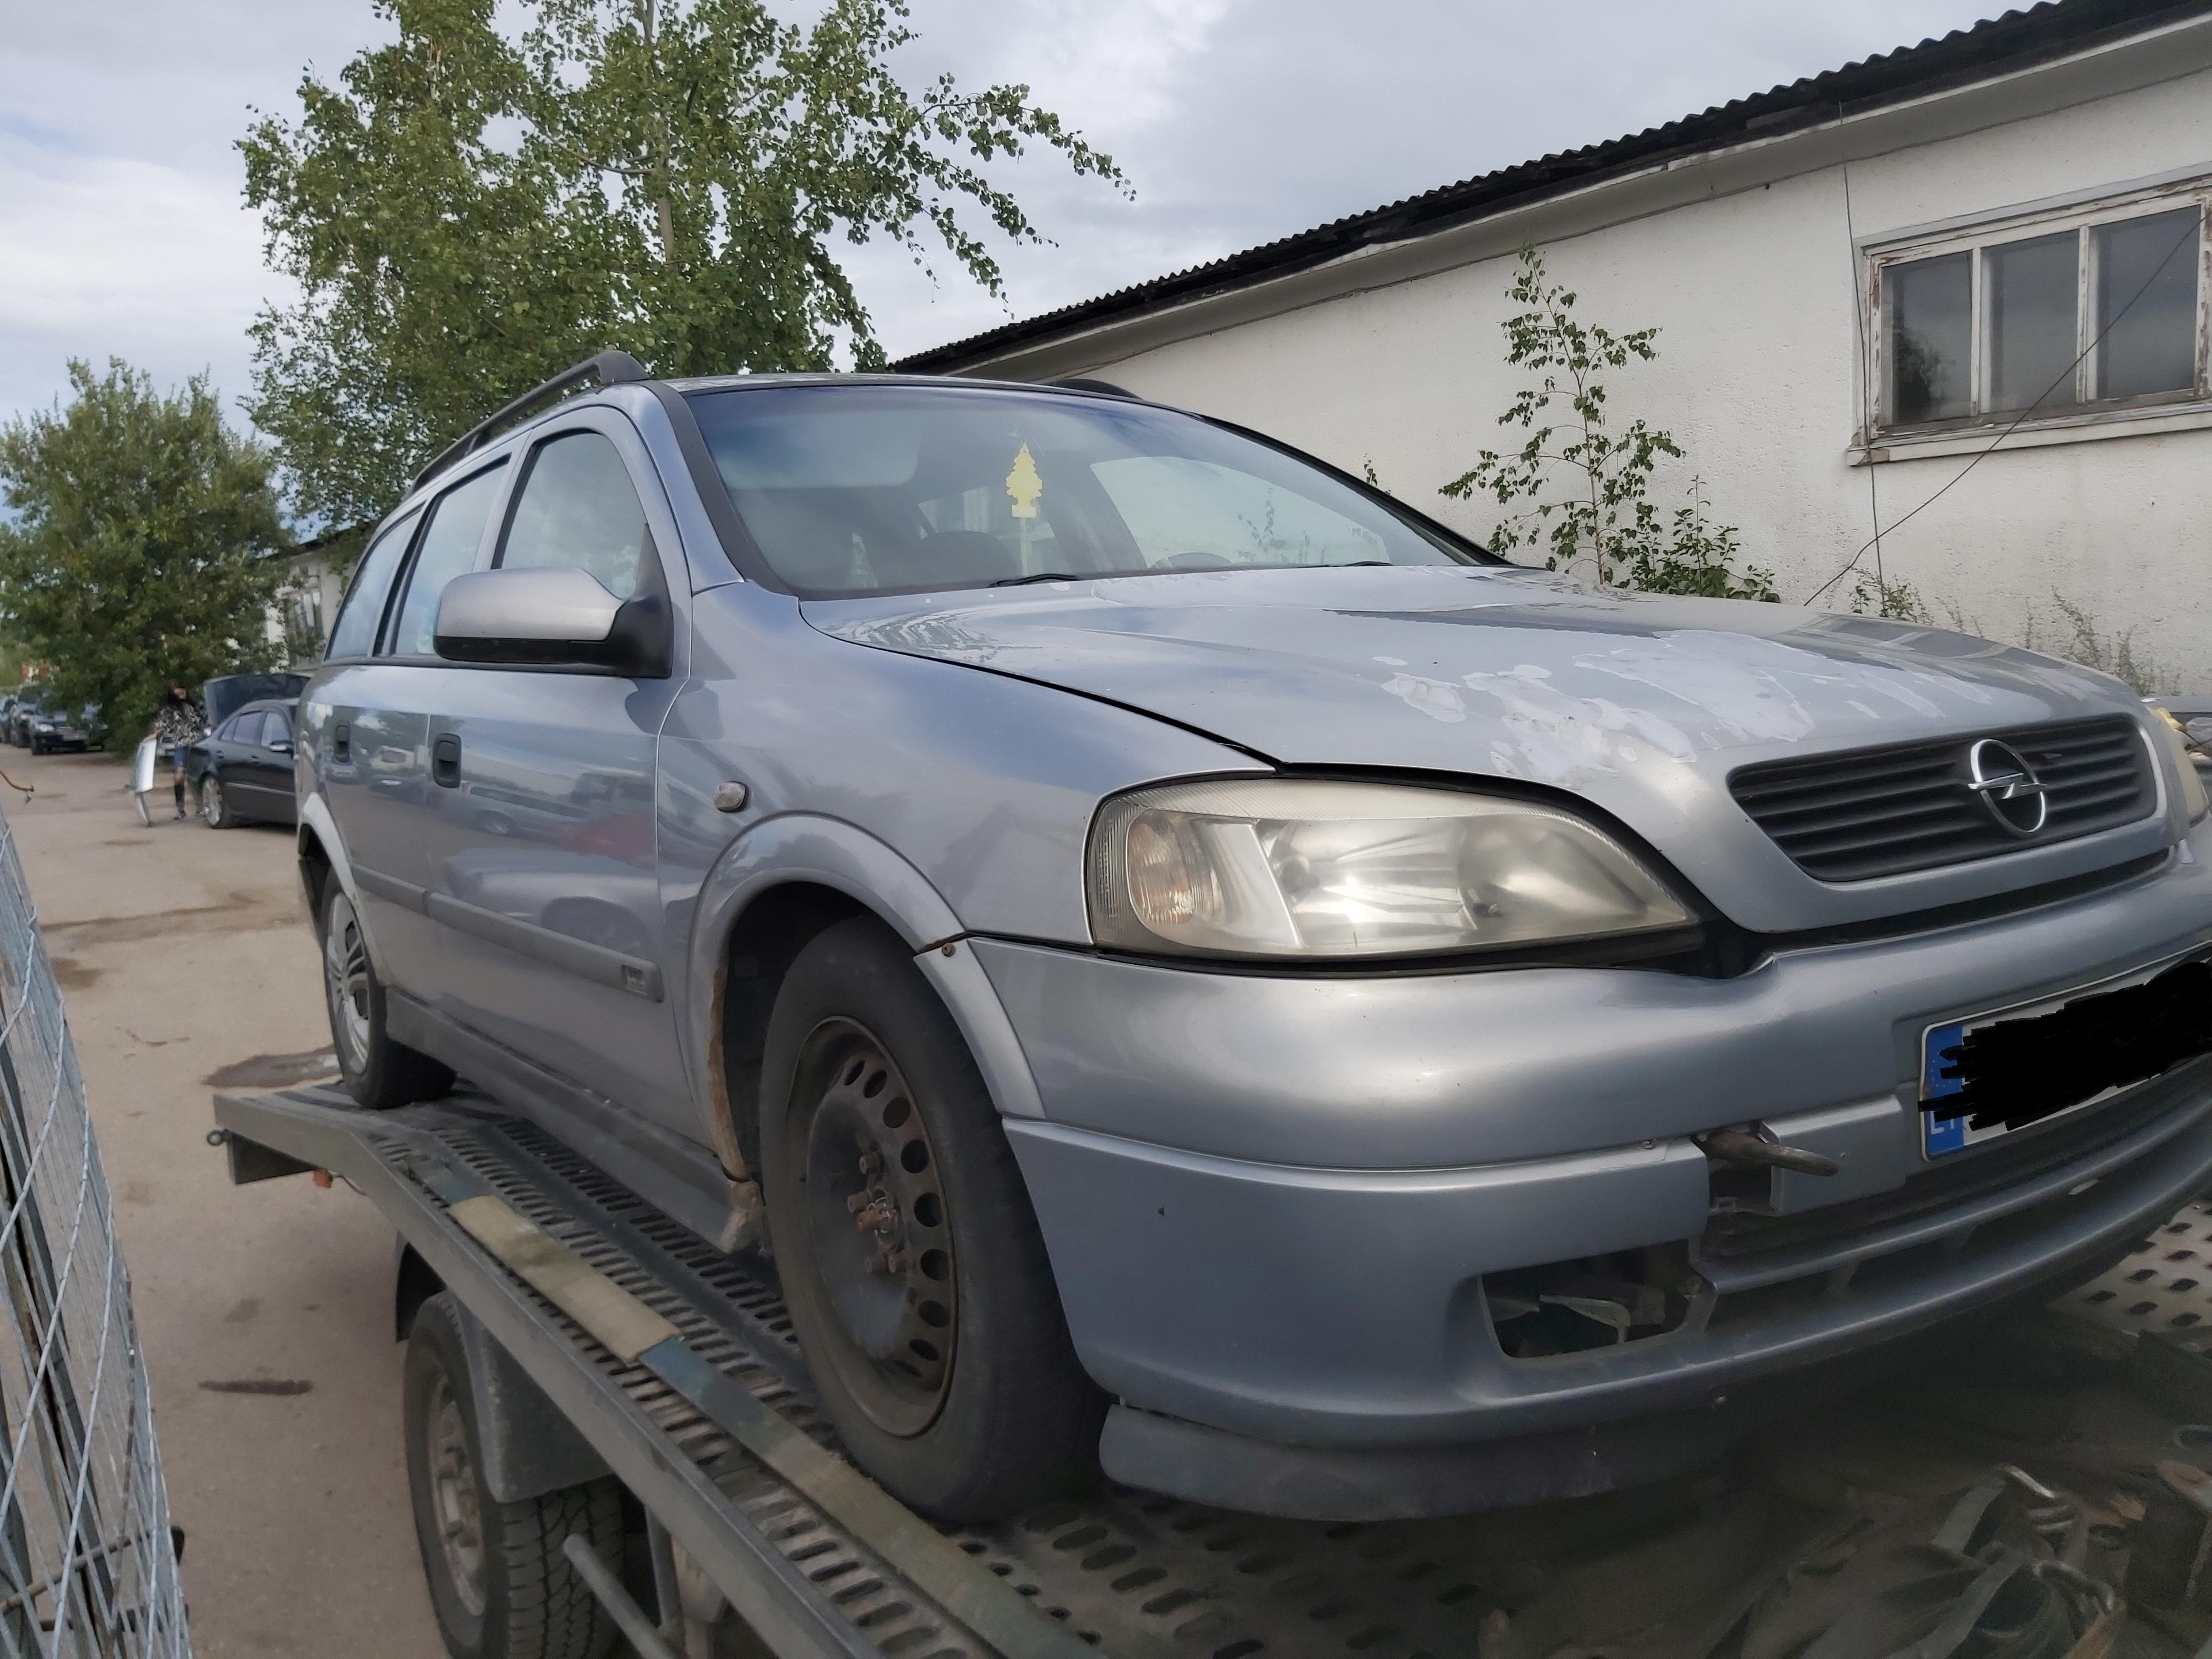 Used Car Parts Foto 1 Opel ASTRA 2000 2.0 Mechanical Universal 4/5 d. Grey 2020-7-30 A5479